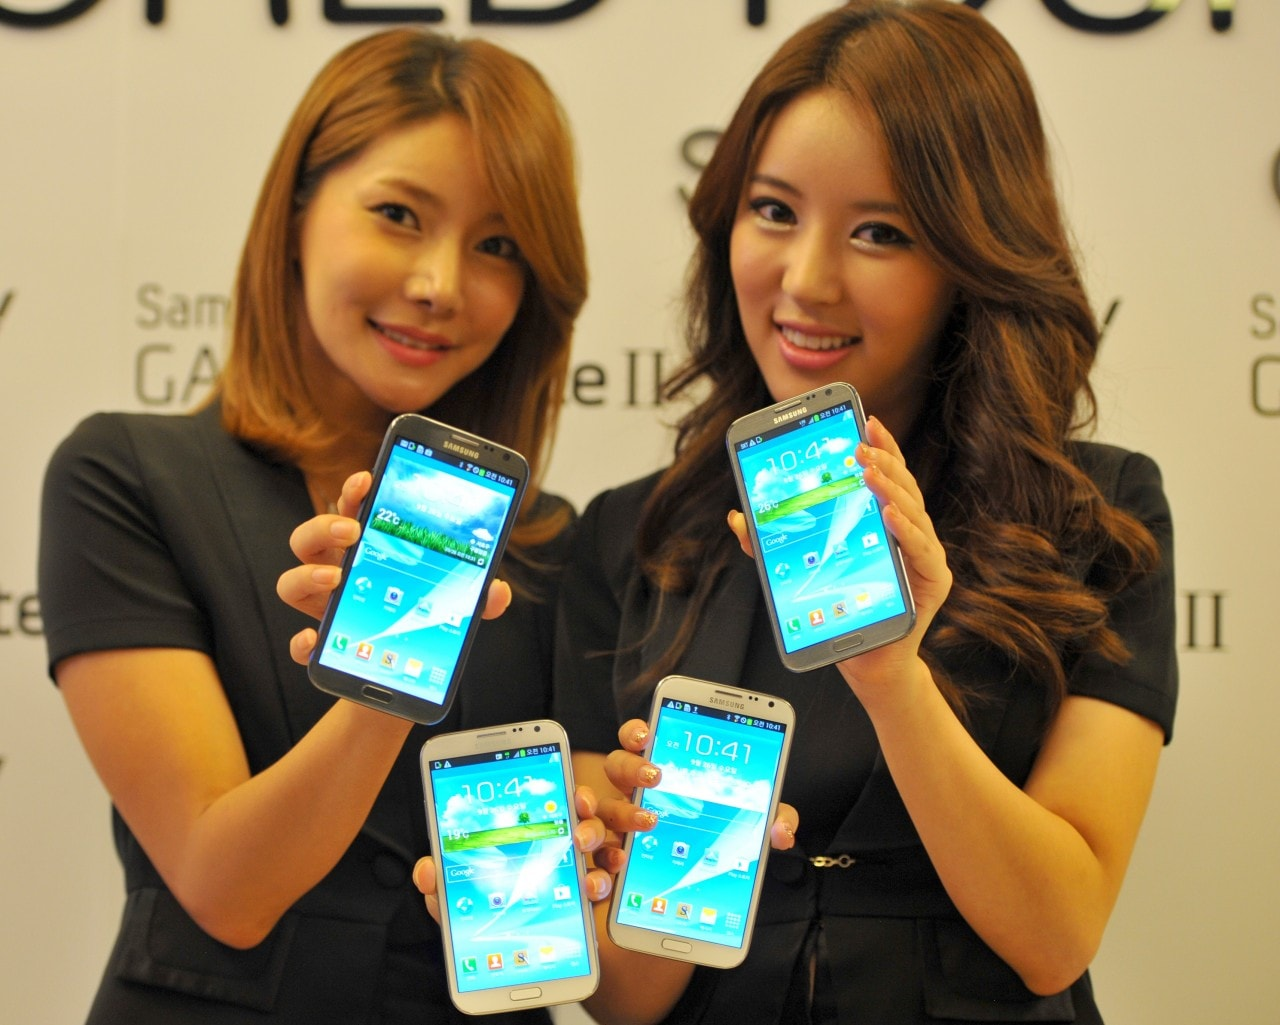 SKOREA-TECHNOLOGY-IT-SMARTPHONE-SAMSUNG